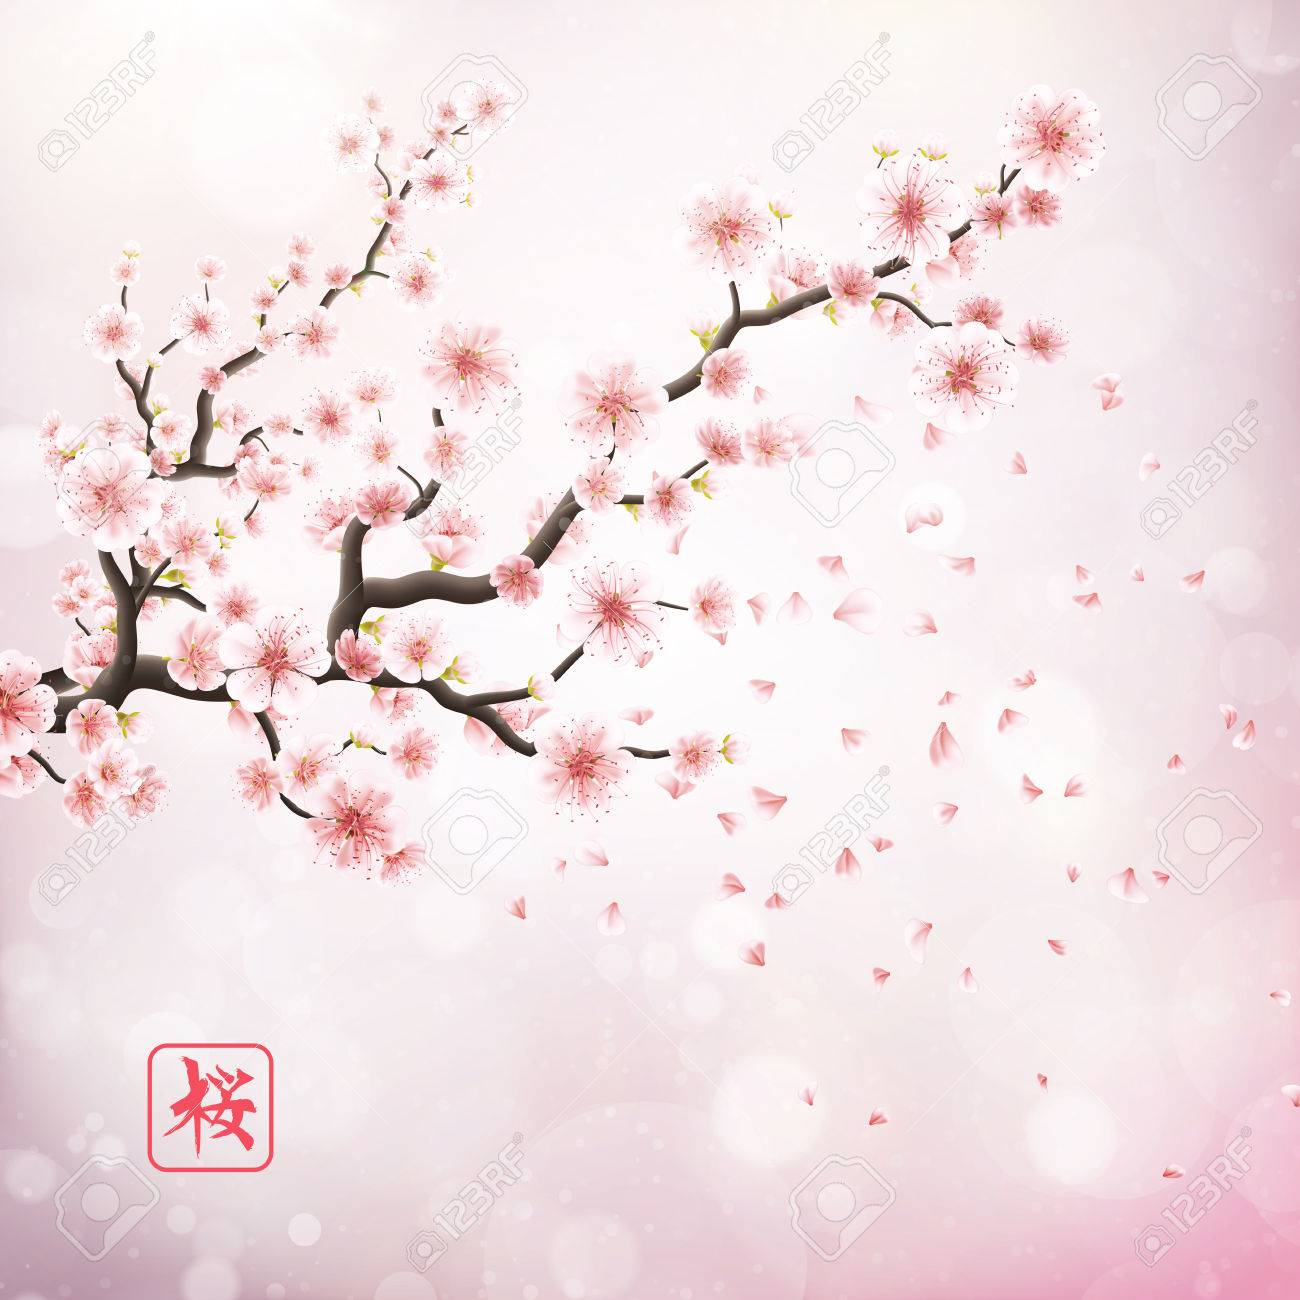 Nature background with blossom branch of pink sakura flowers nature background with blossom branch of pink sakura flowers template isolated on white background dhlflorist Images